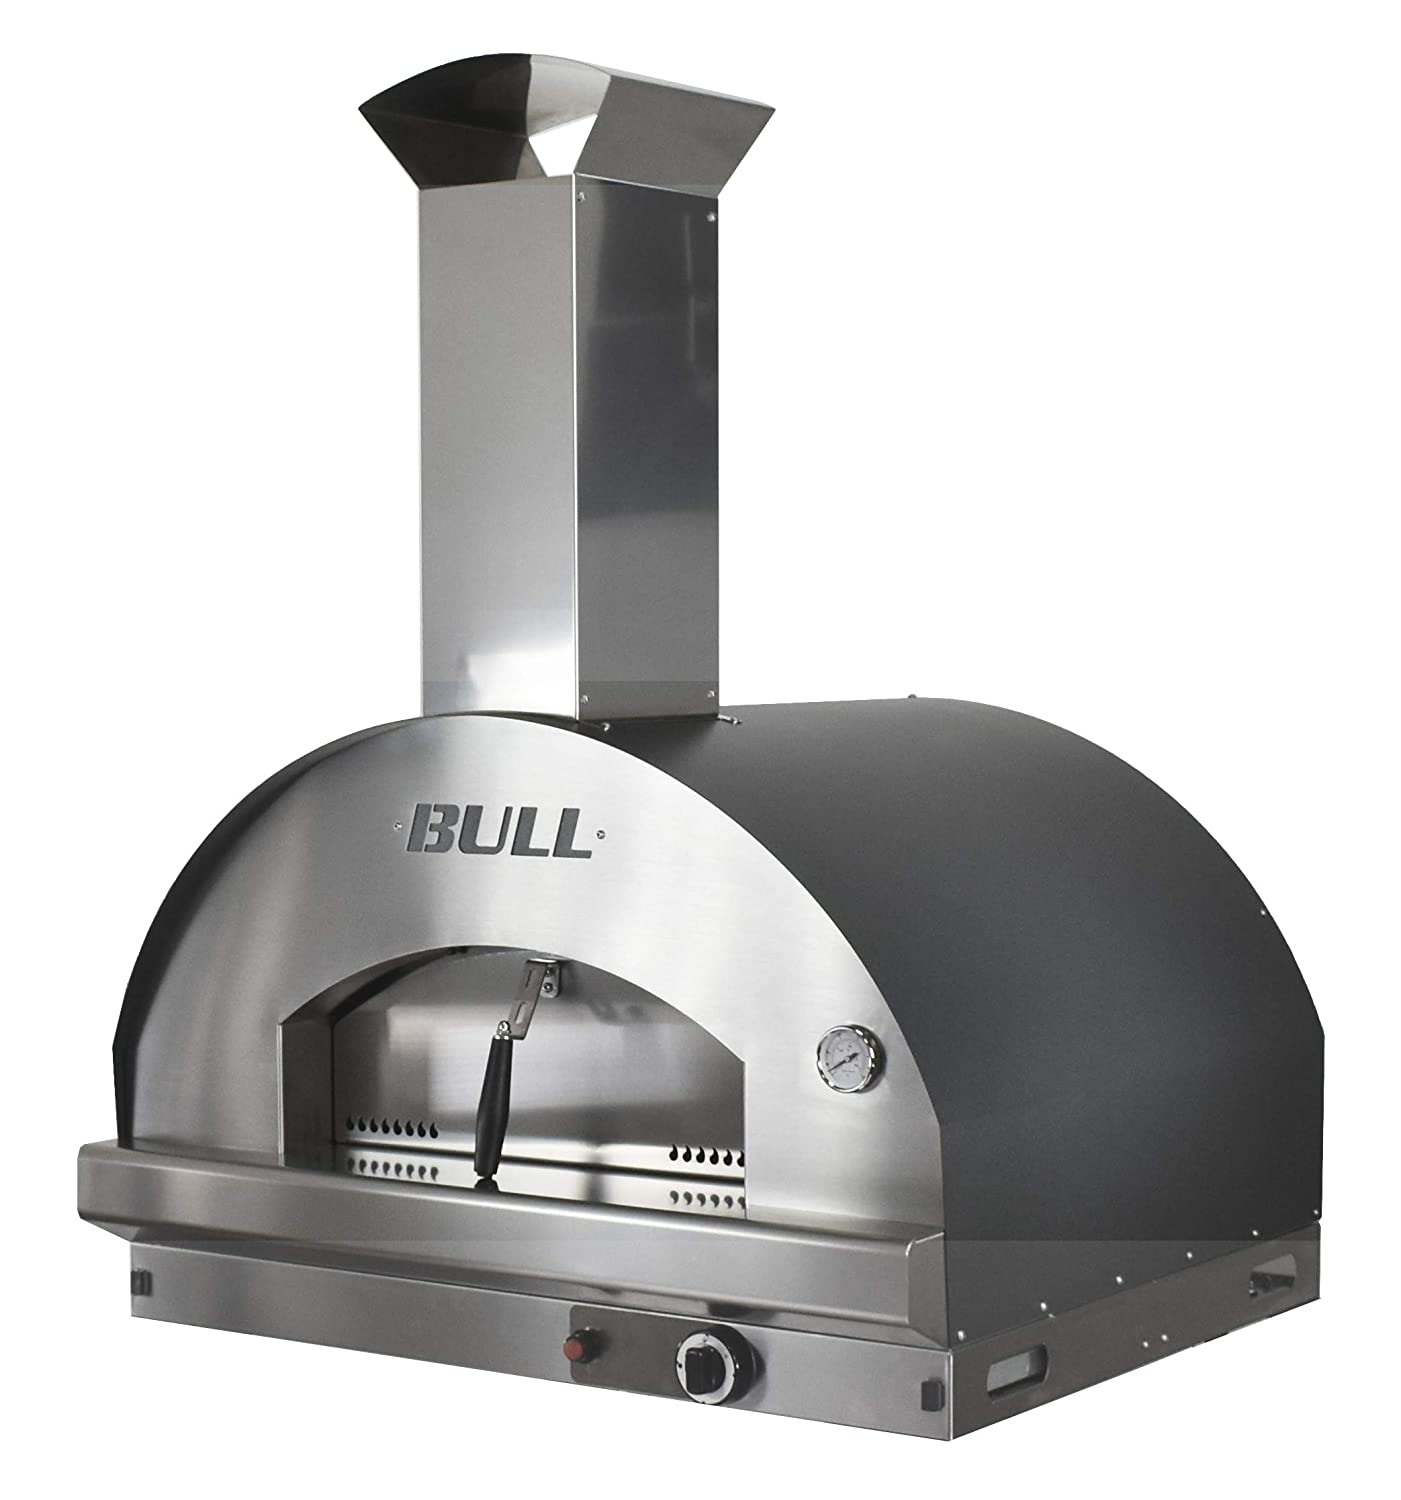 Bull Outdoor Products 77650 Gas Fired Italian Made Pizza Head-Liquid Propane Outdoor-Kitchen-ovens, Stainless Steel